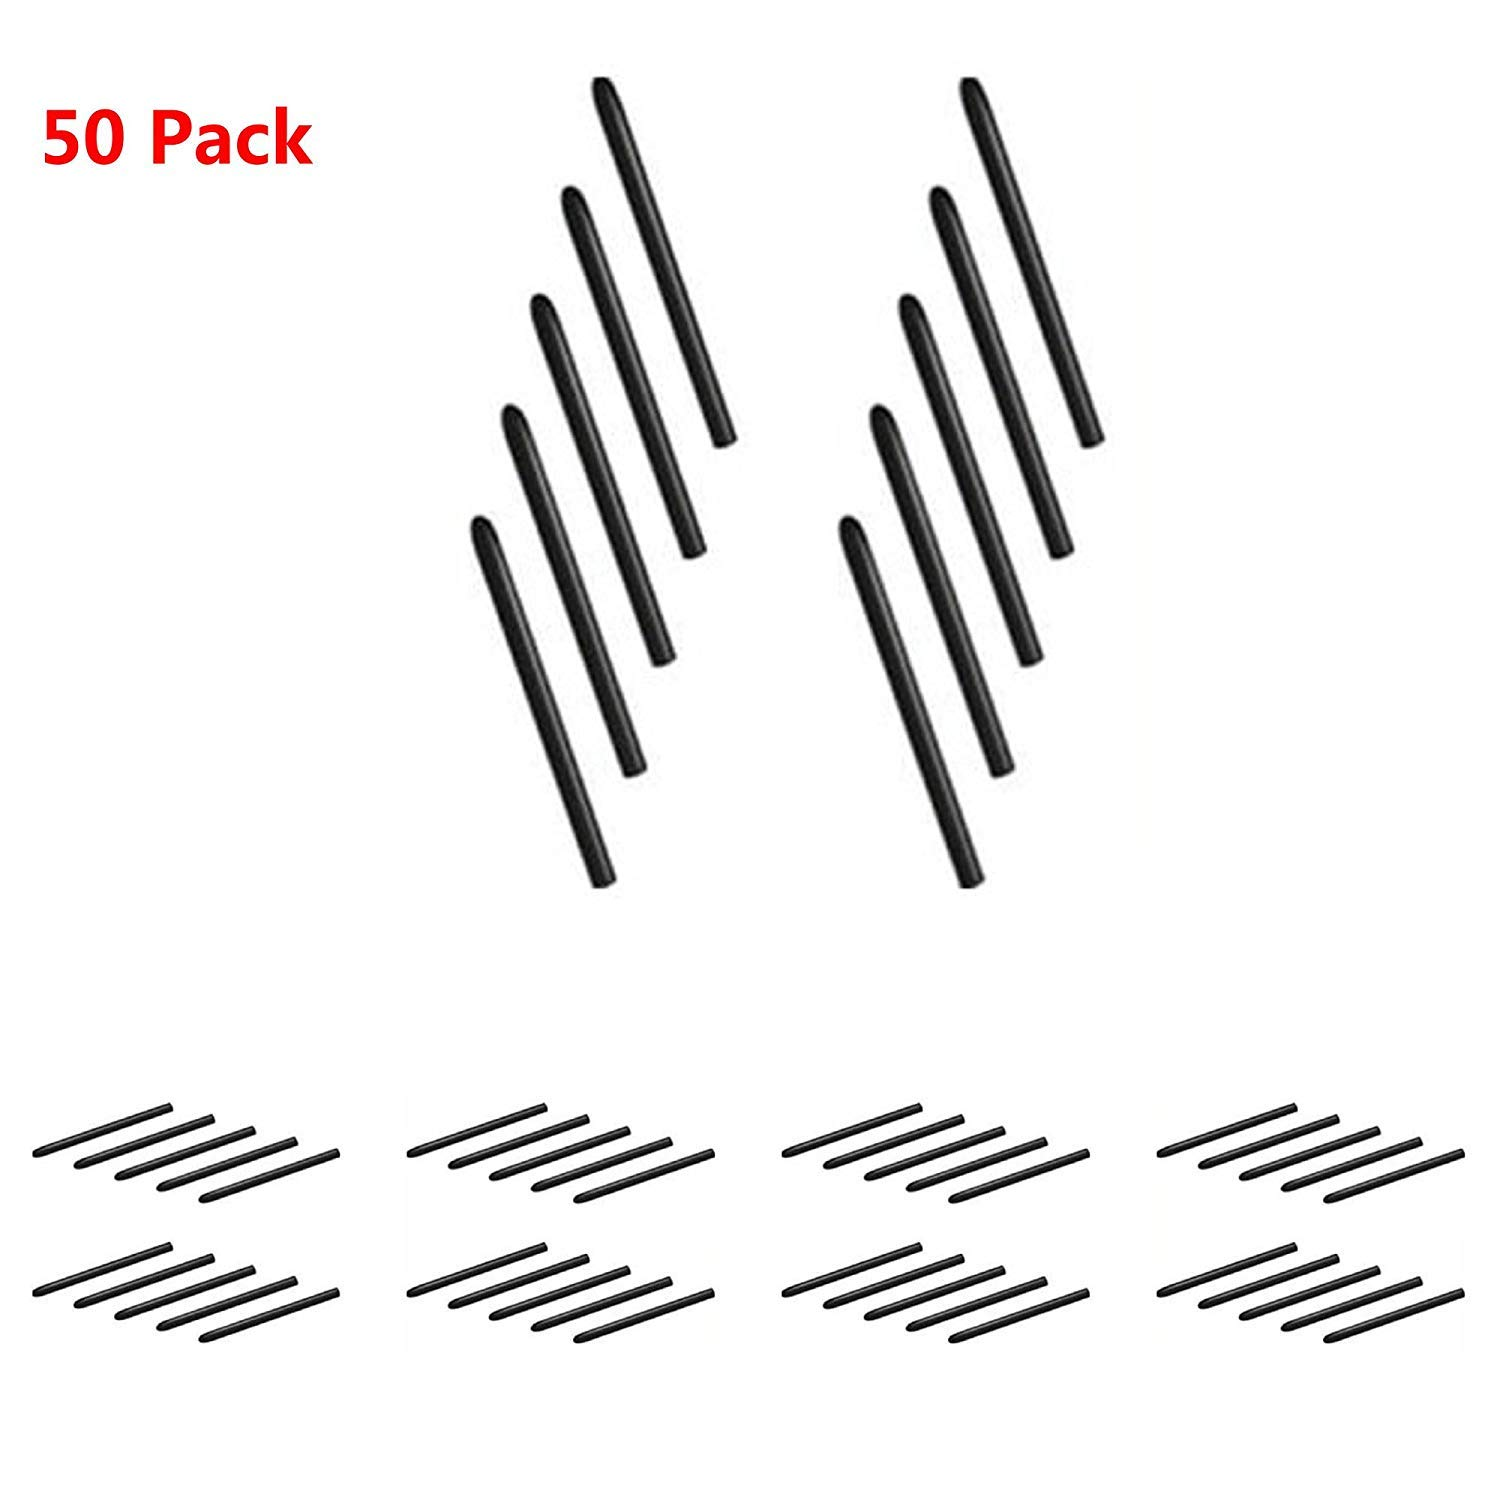 50pcs Pen Nibs tip Refill for Wacom CTL CTH 471 671 472 490 690 4100 6100 Intuos4 5 by USonline911